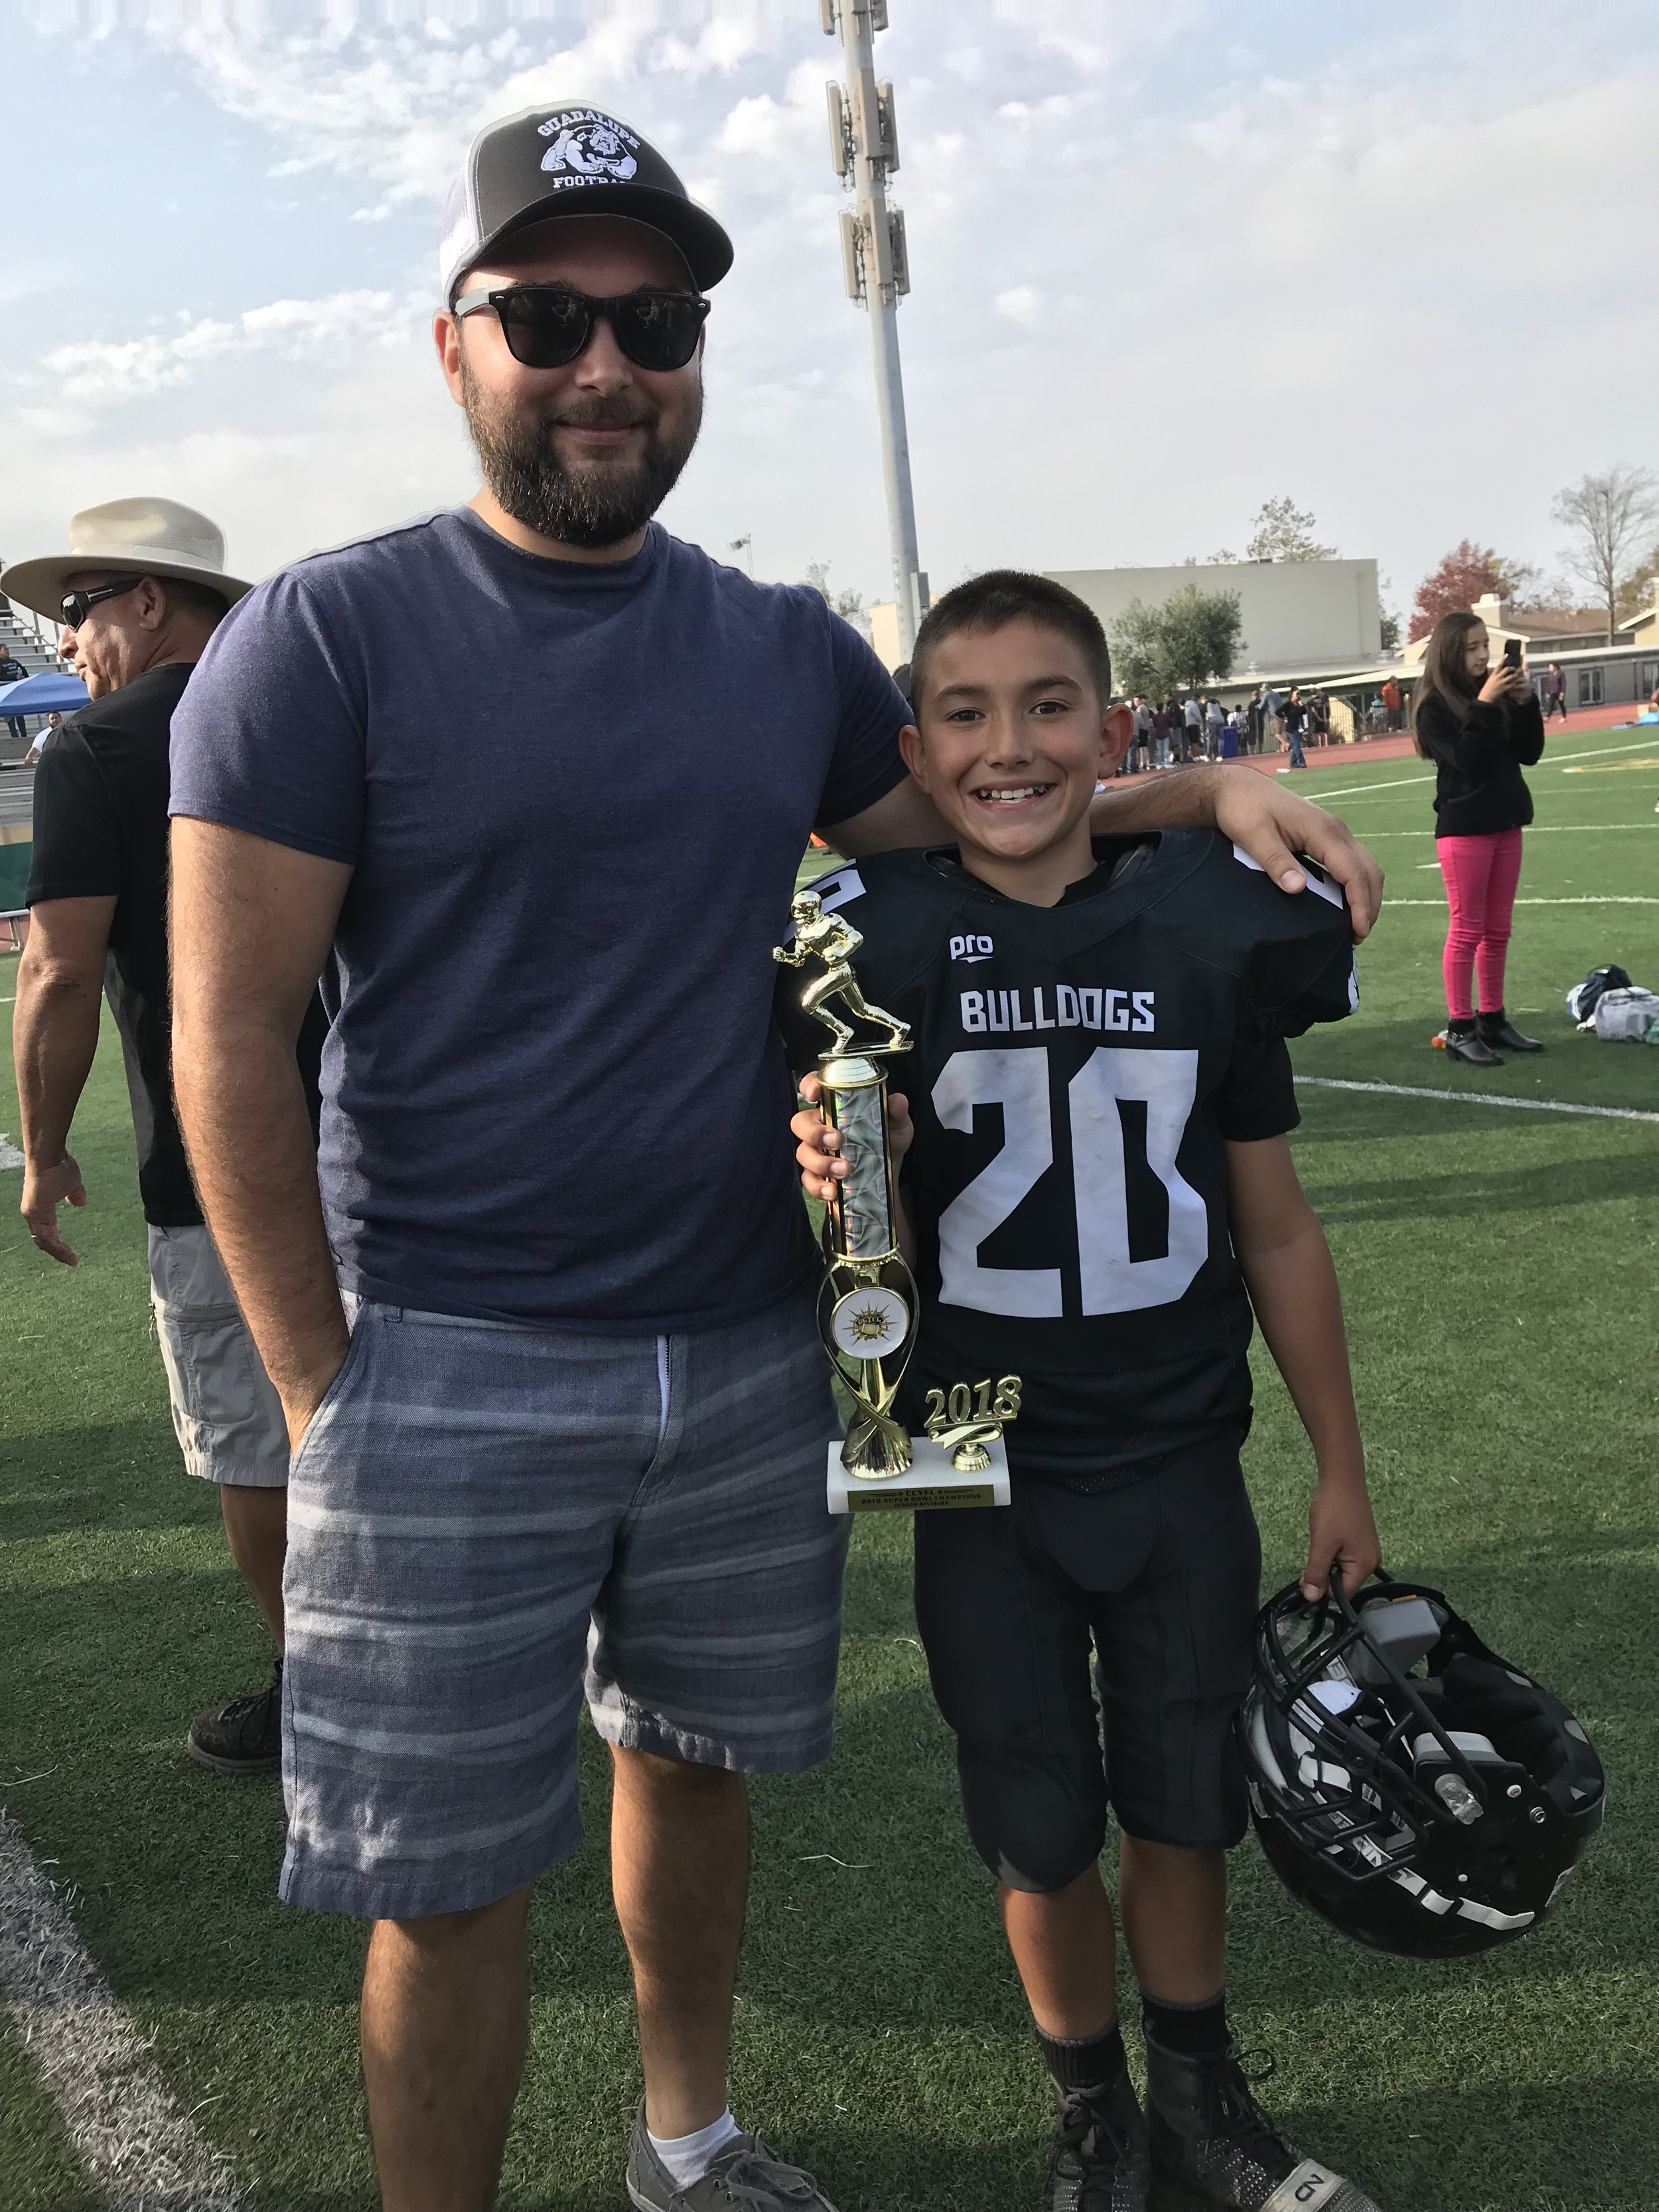 nick and his younger brother brandan after his little league superbowl win this past year